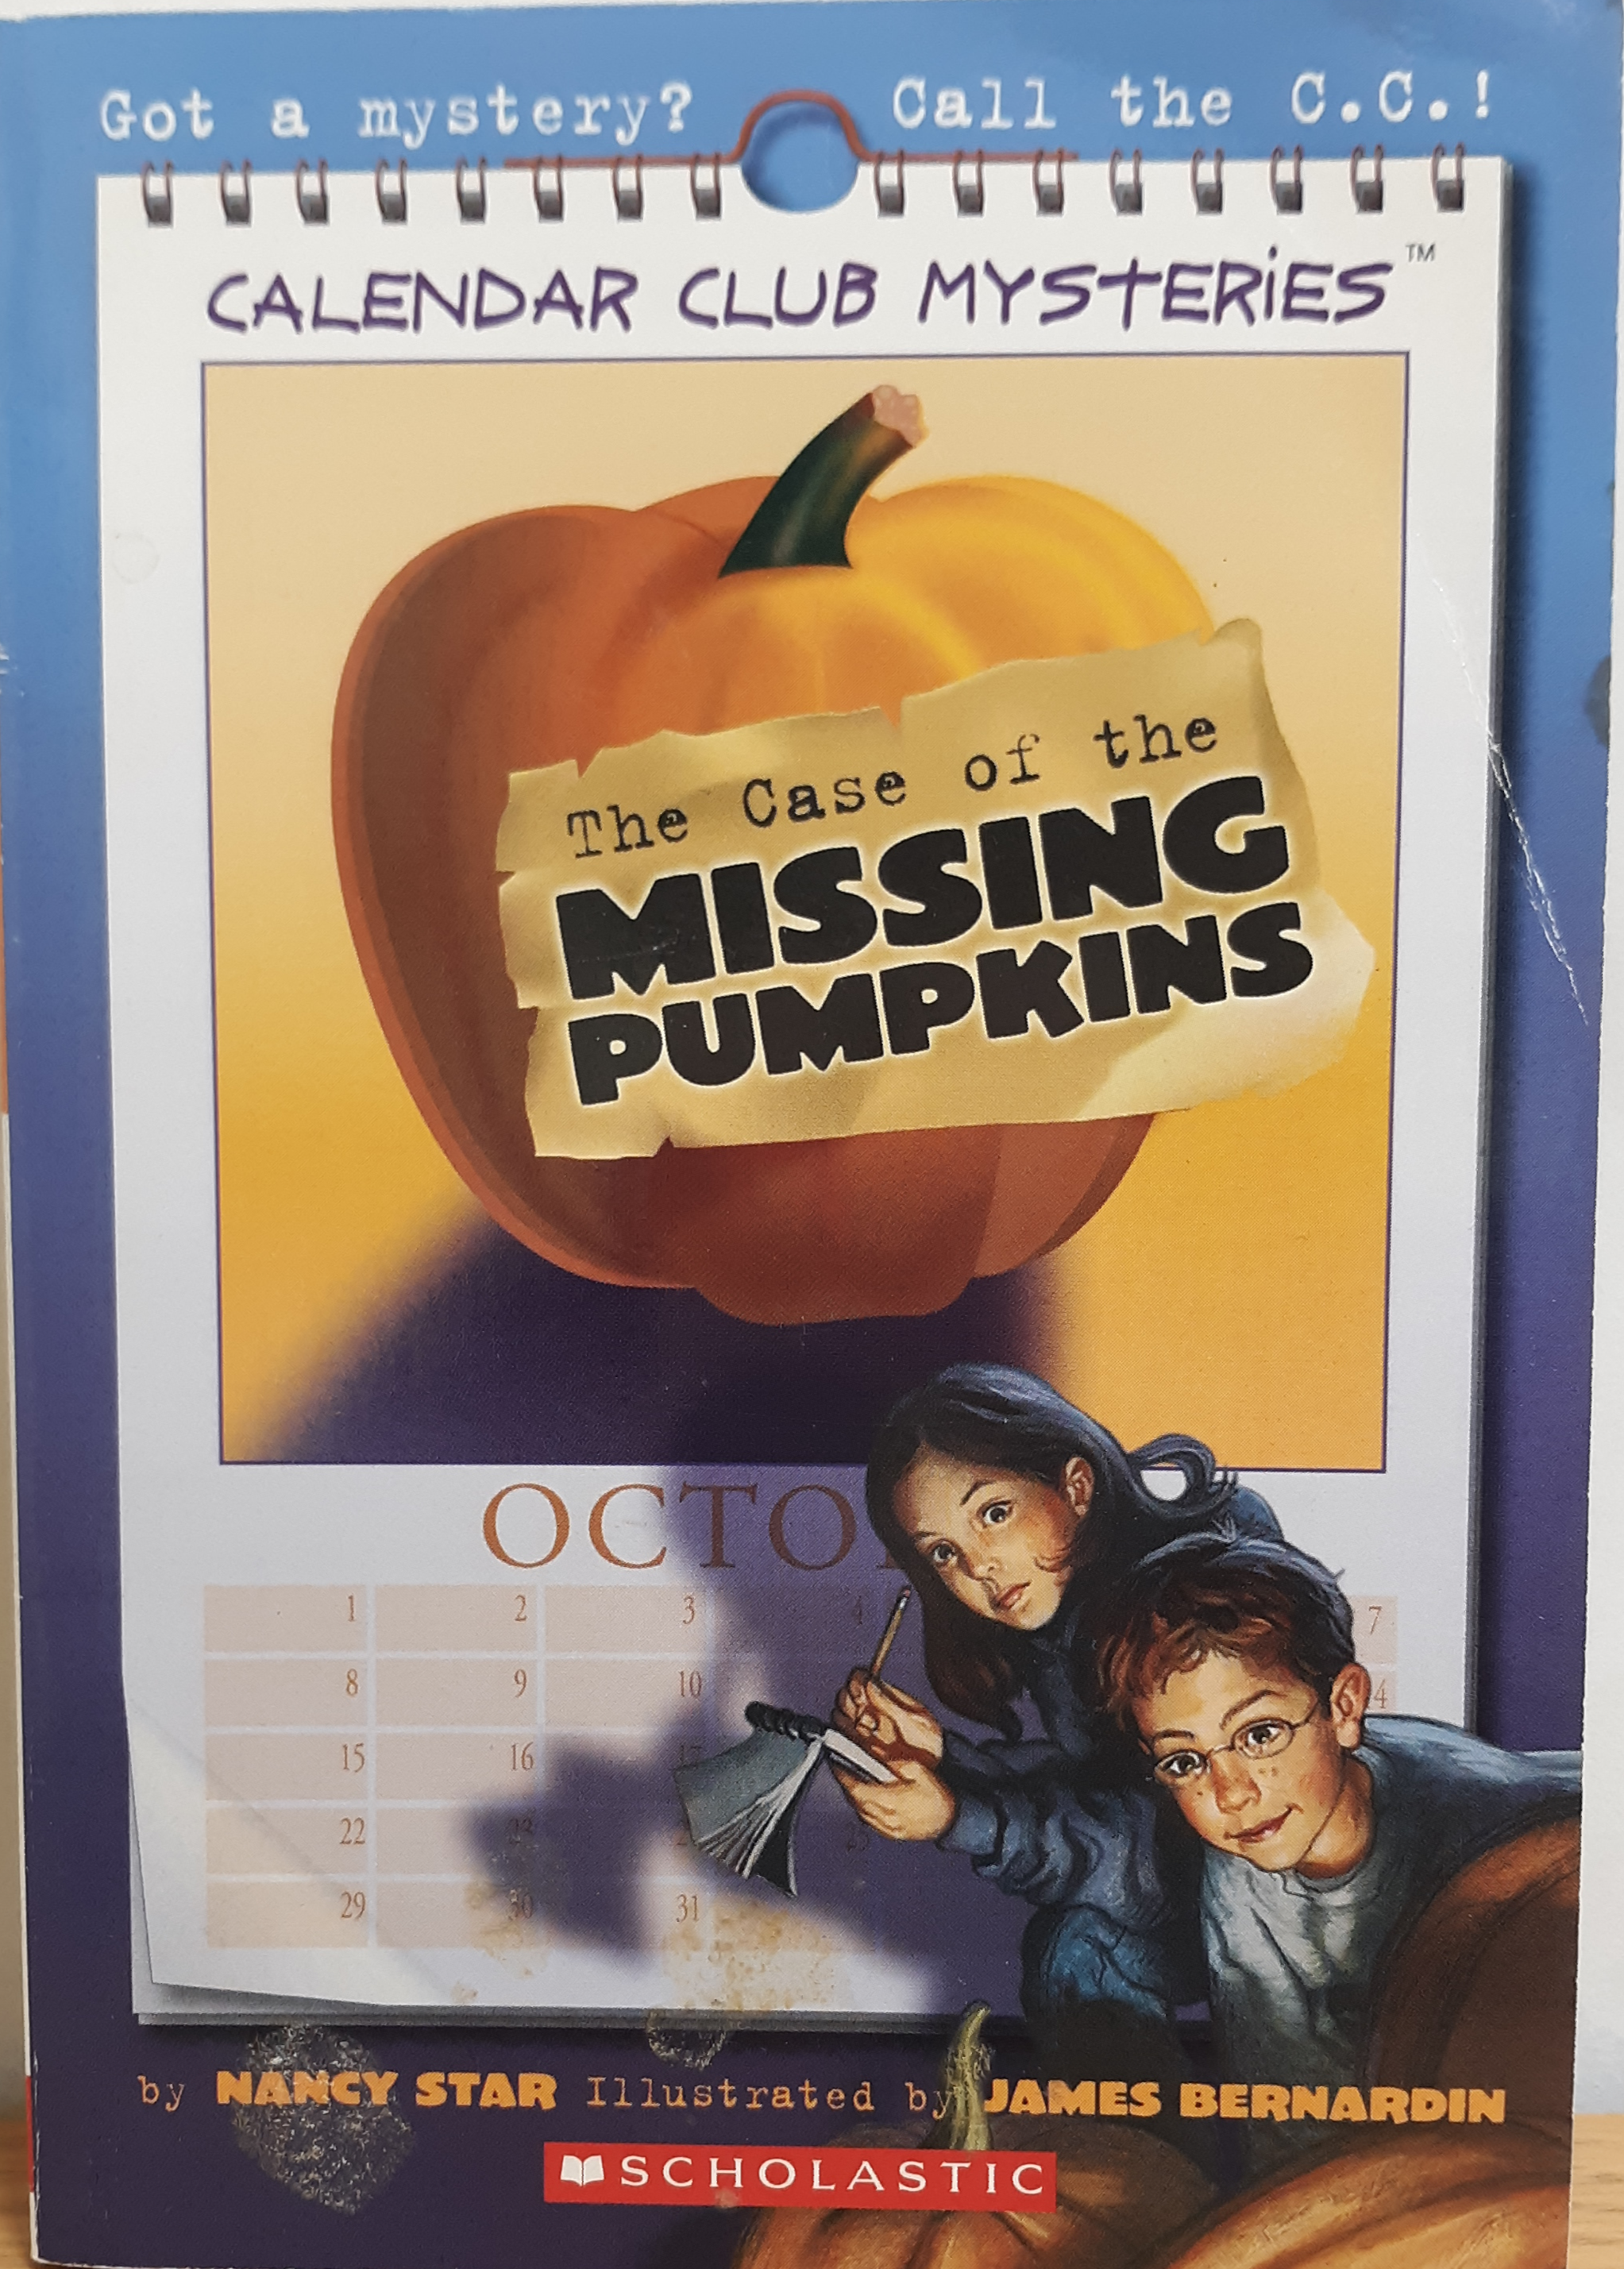 https://0201.nccdn.net/1_2/000/000/0de/3b5/case-of-the-missing-pumpkins-.png